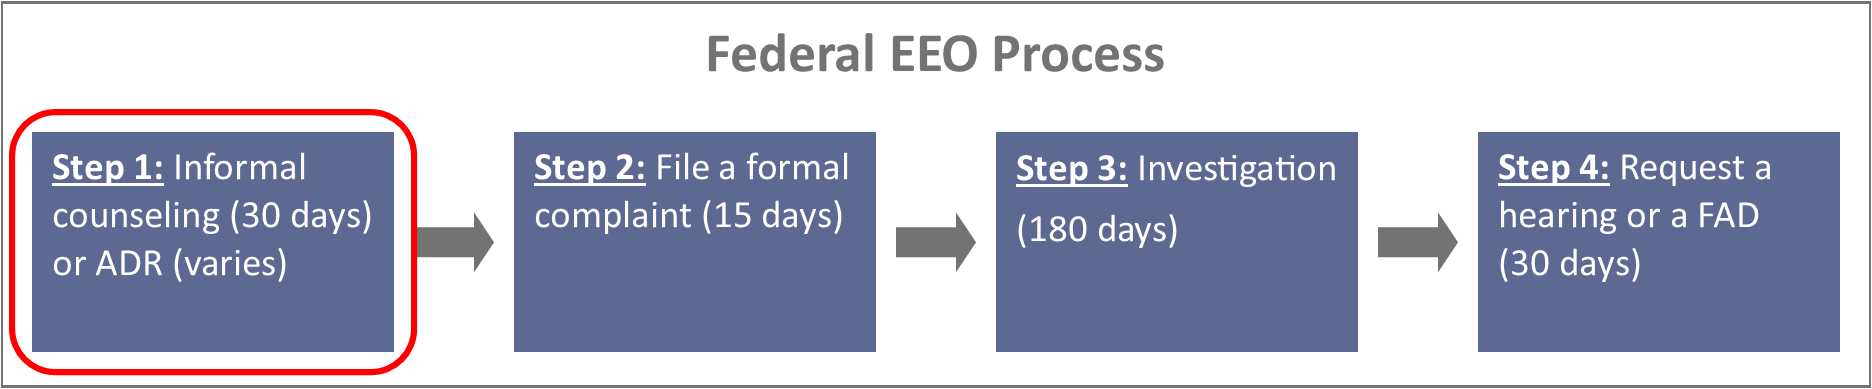 Federal EEO process; Step 1: Informal counseling (30 days) or ADR (varies); Step 2: File a formal complaint (15 days); Step 3: Investigation (180 days); Step 4: Request a hearing or a FAD (30 days)